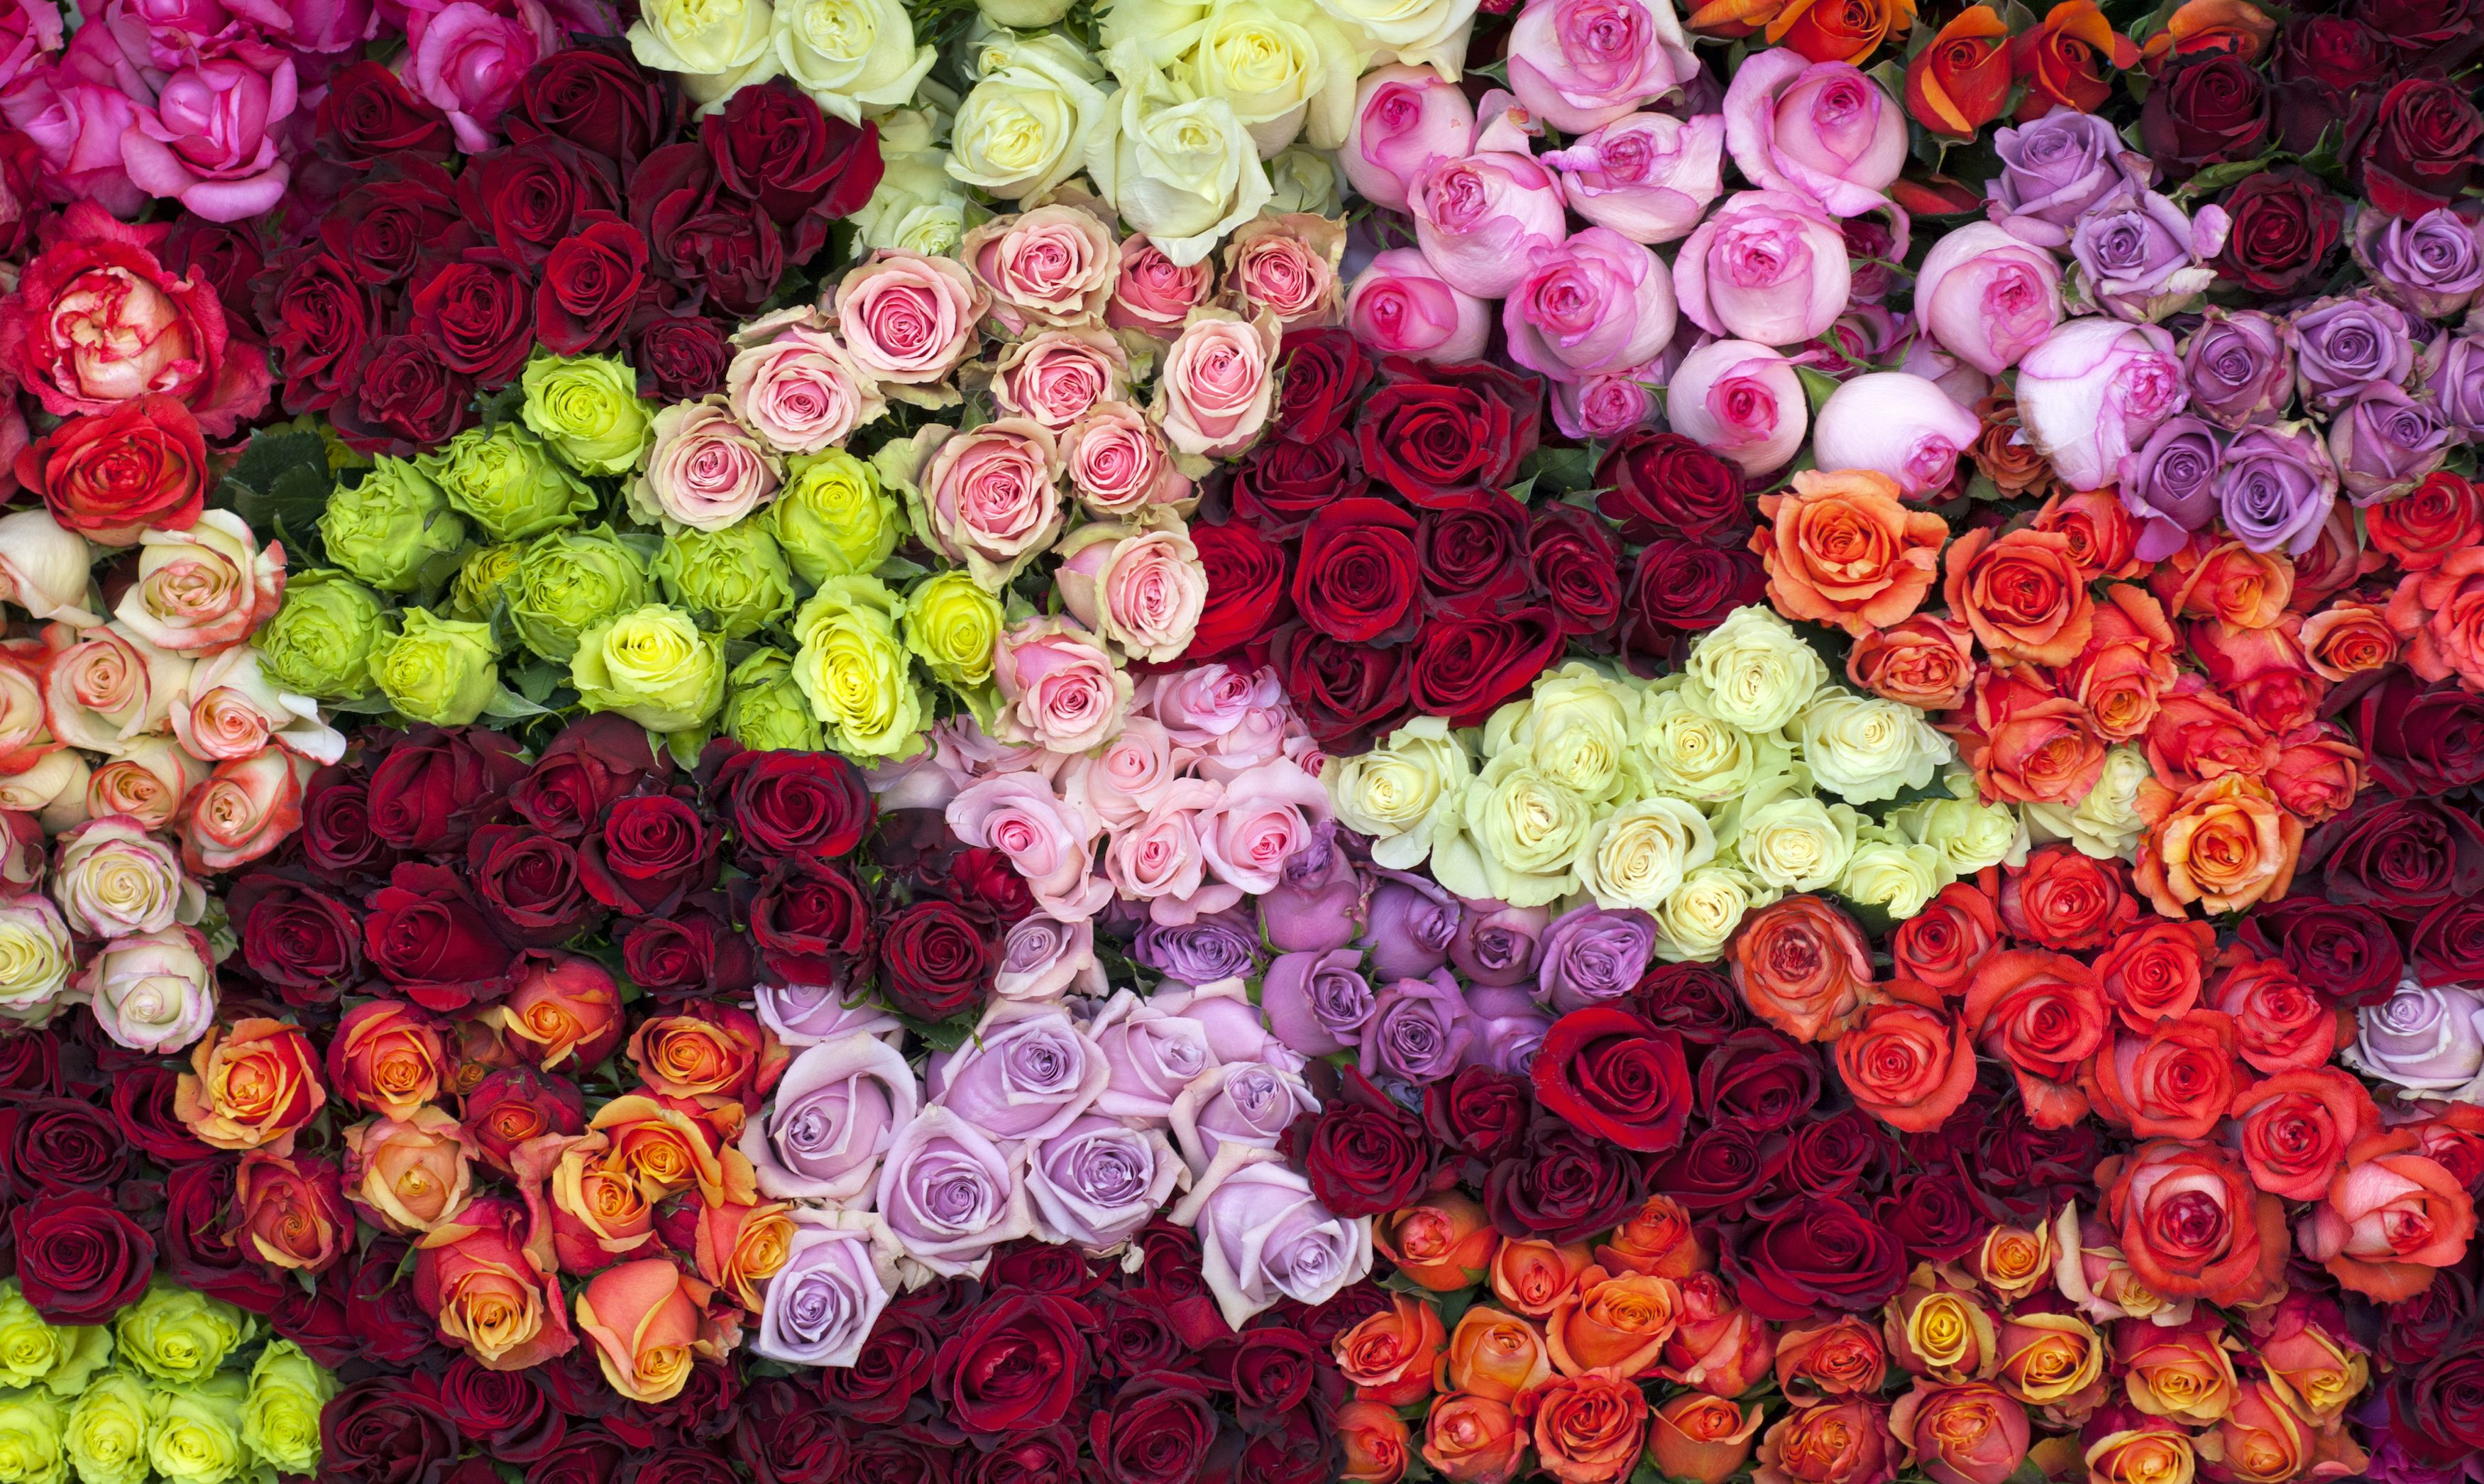 14 Rose Color Meanings - What Do the Colors of Roses Mean for ...